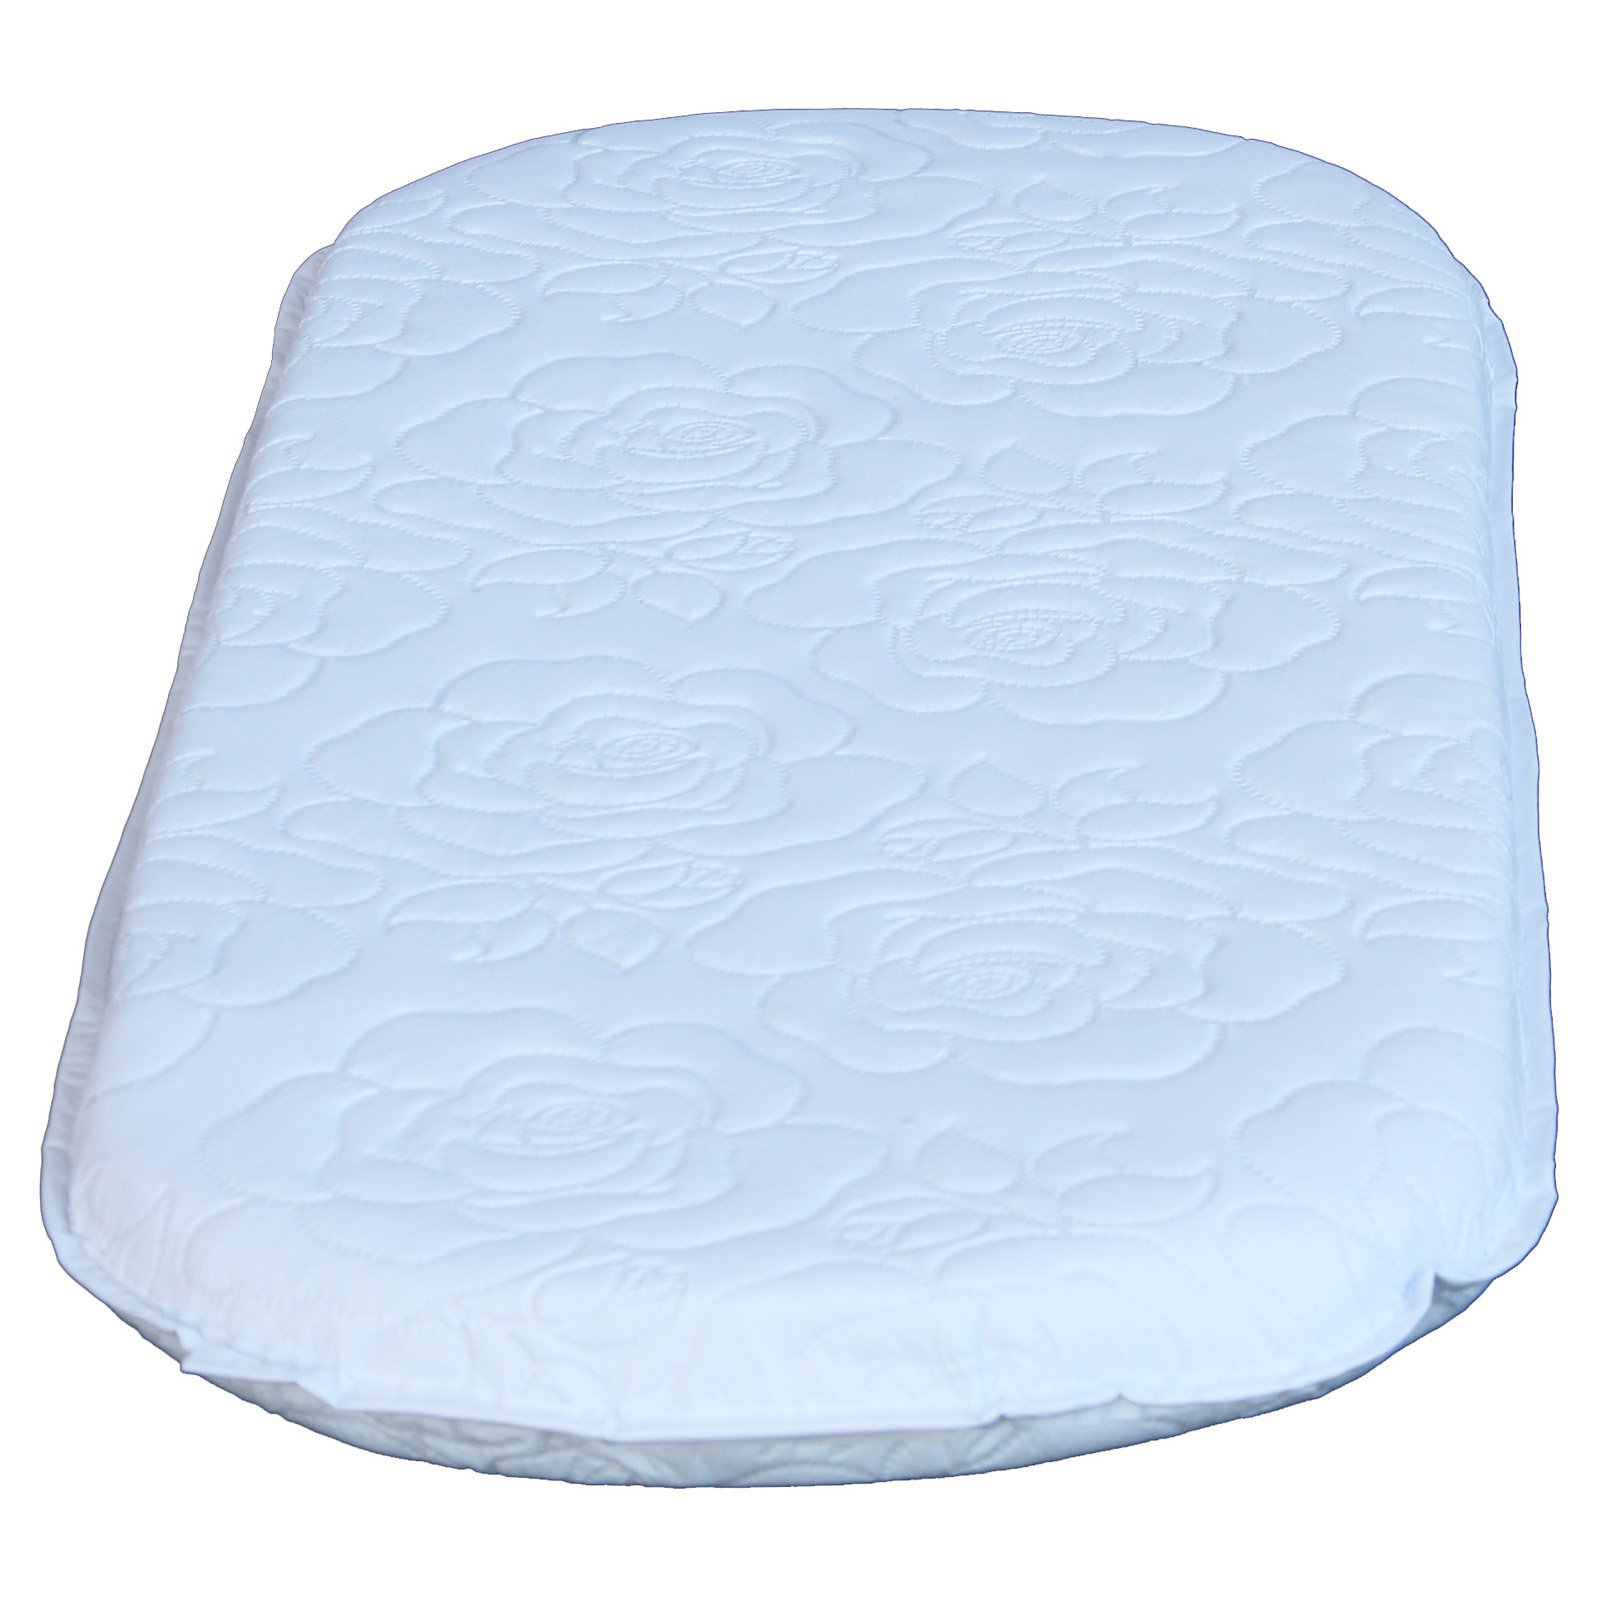 Colgate Bassinet Oval Mattress - White